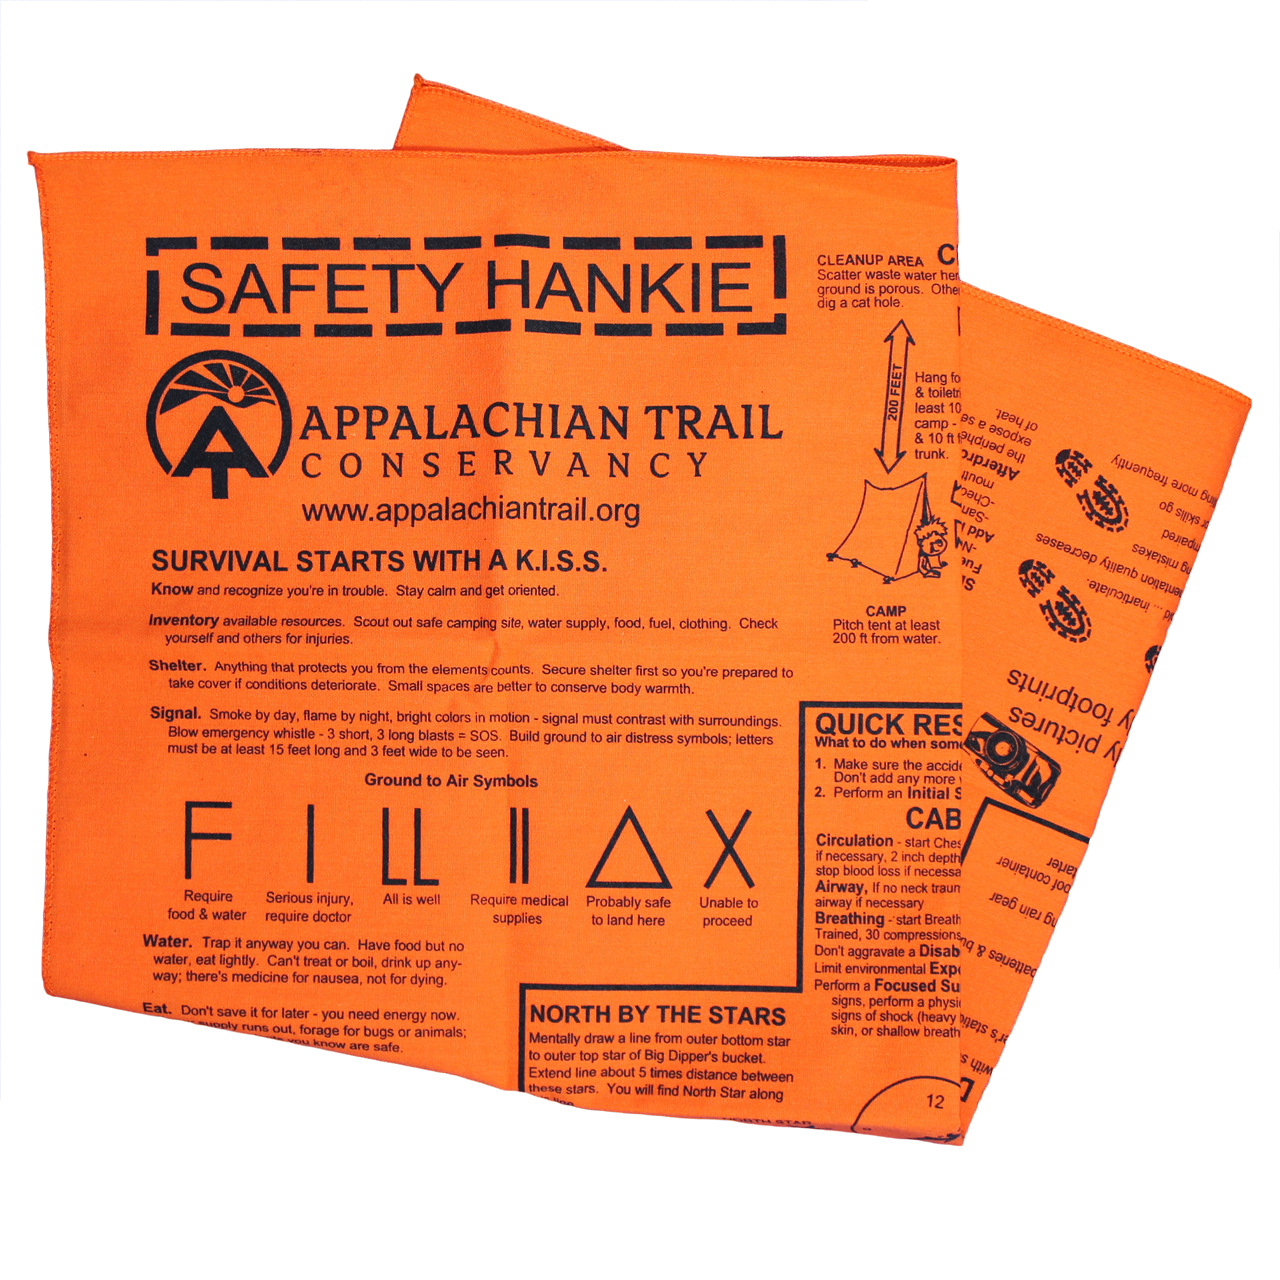 A.T. Safety Hankie